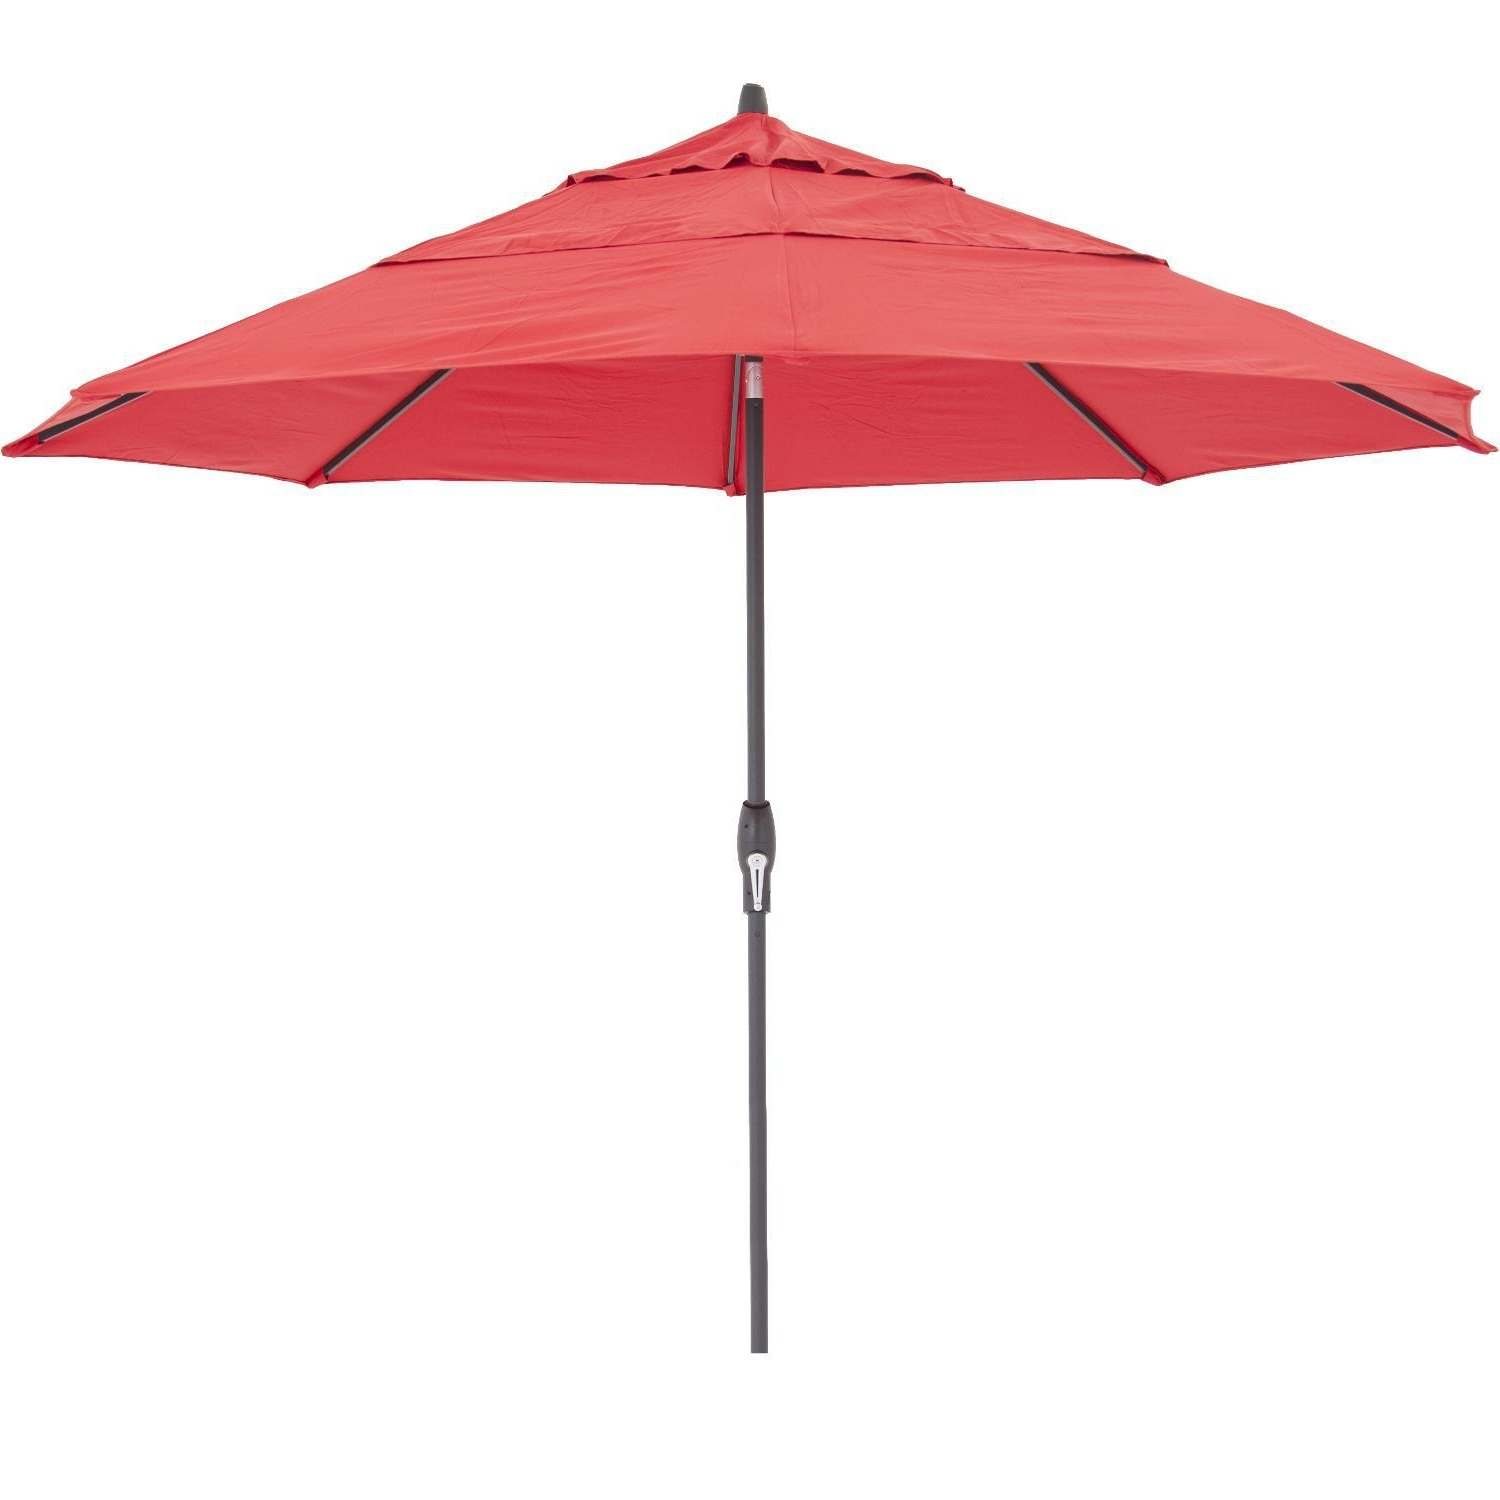 2019 Red Sunbrella Patio Umbrellas Pertaining To Treasure Garden 11 Ft (View 13 of 20)